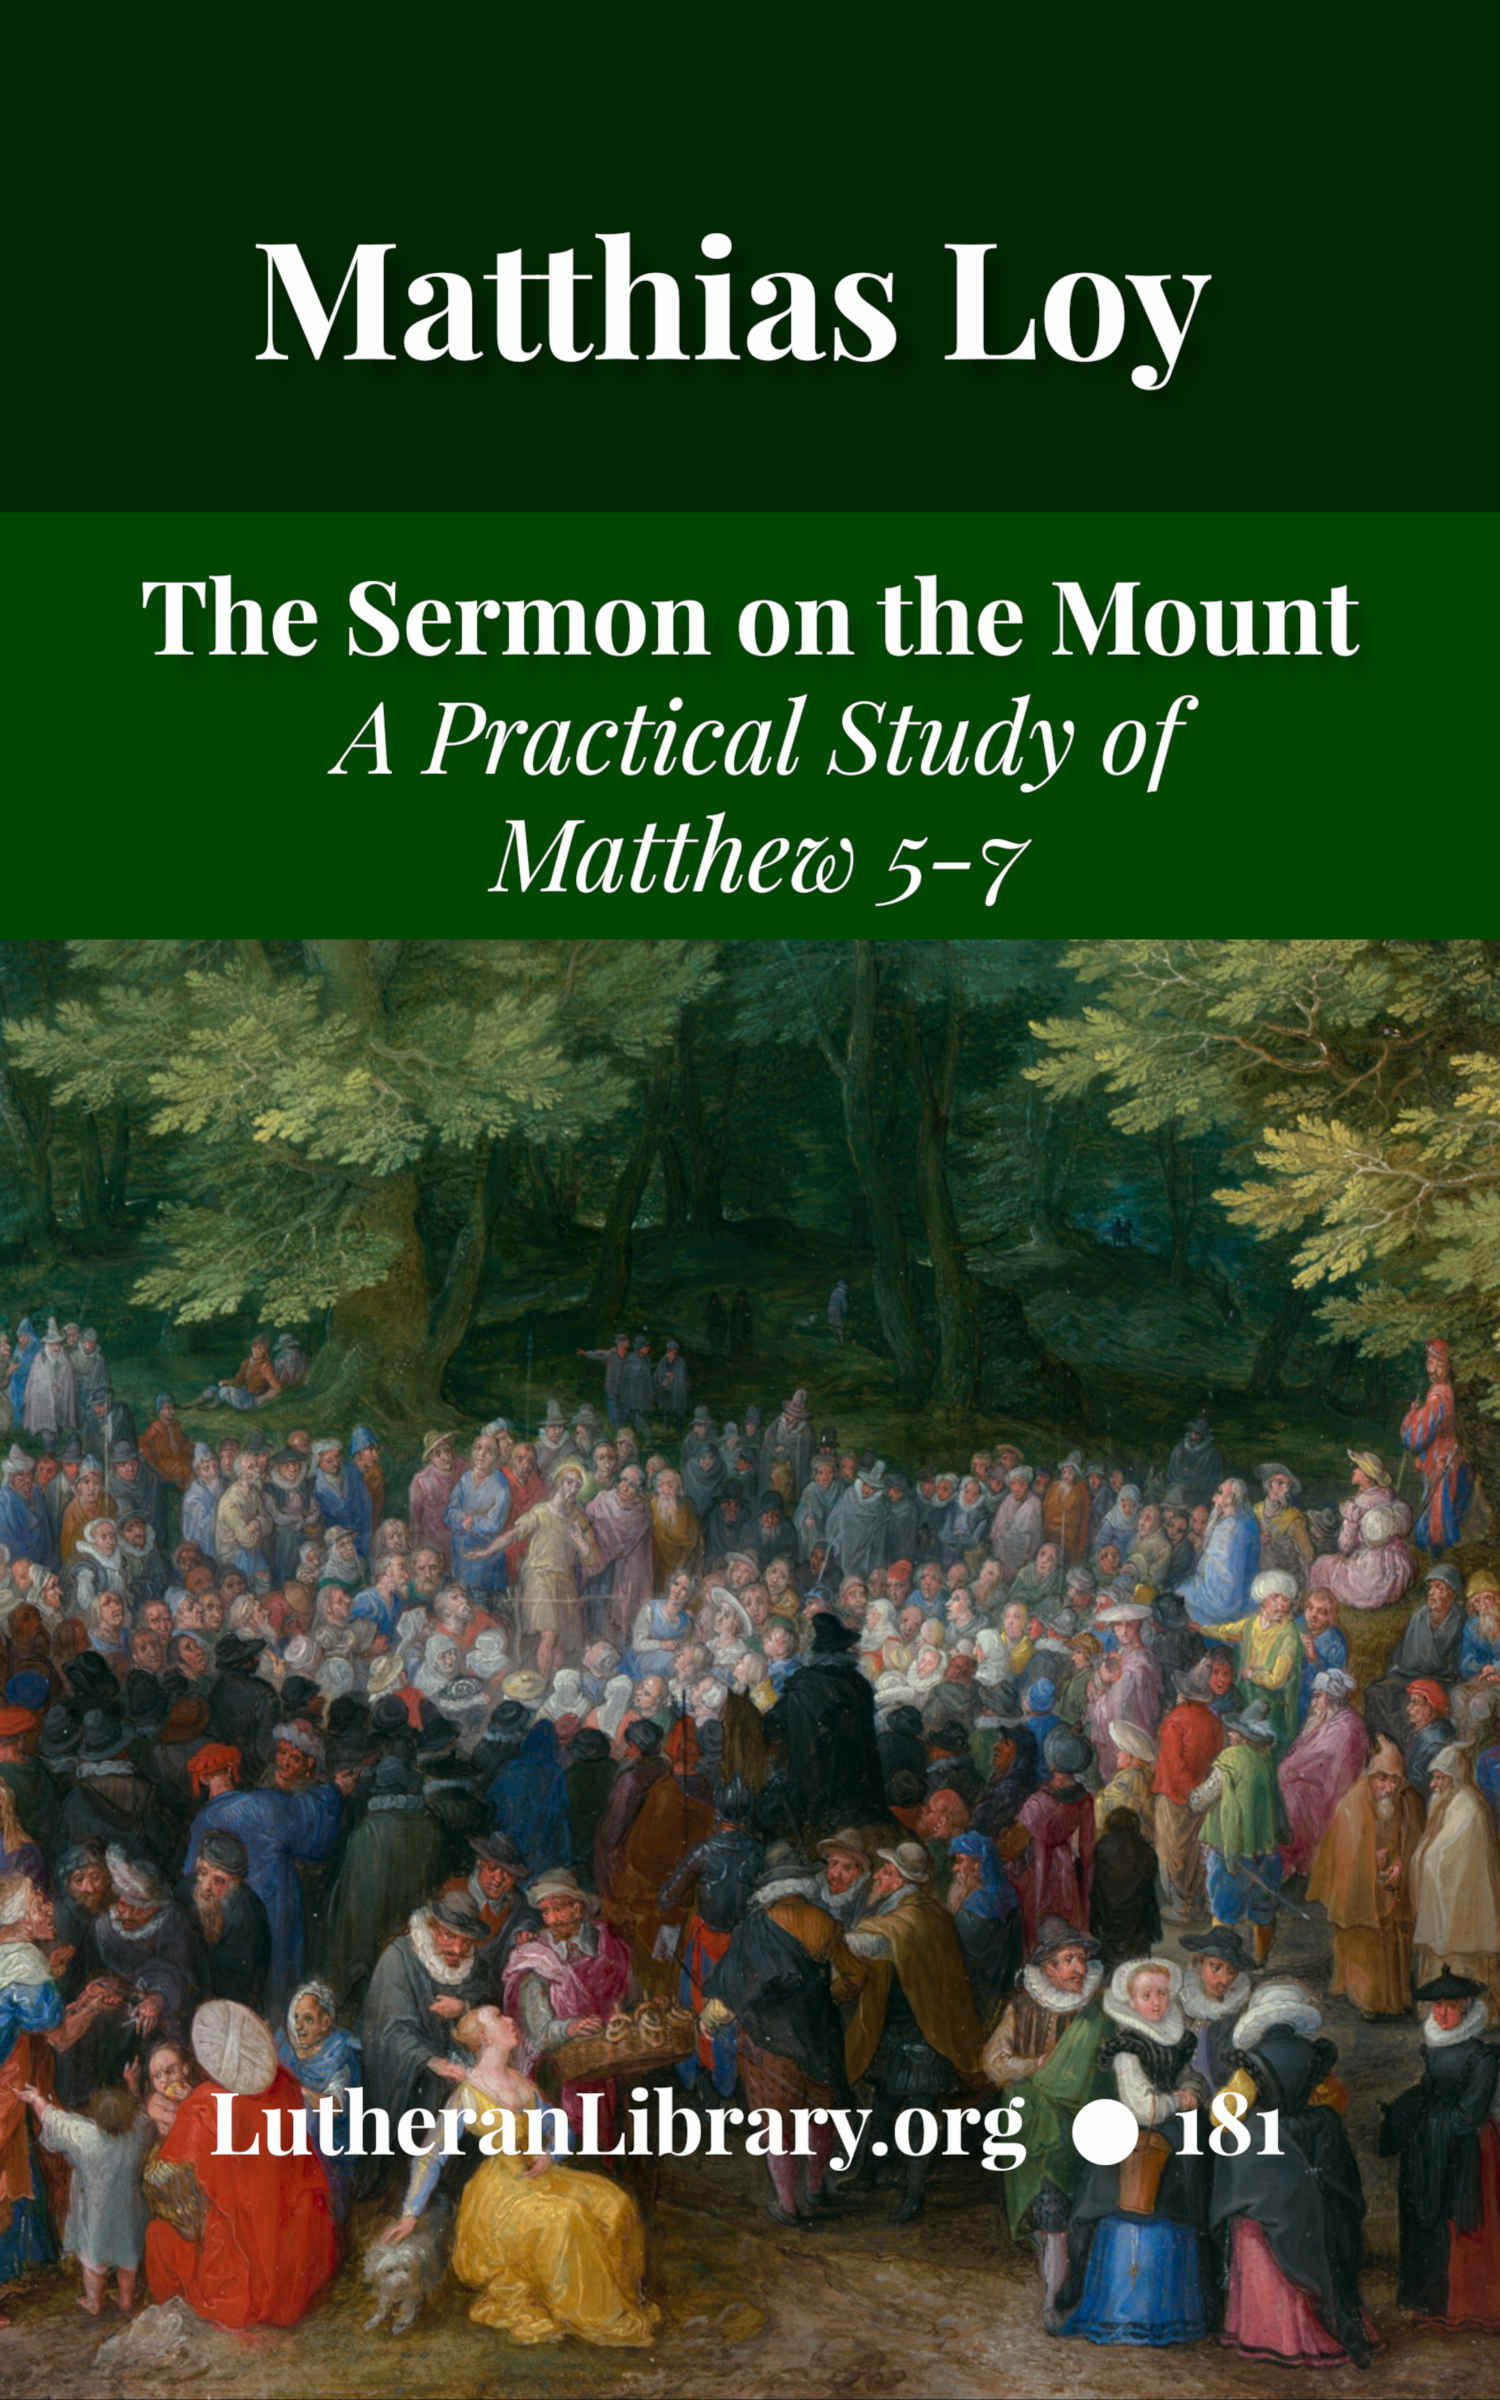 The Sermon on the Mount: A Practical Study by Matthias Loy